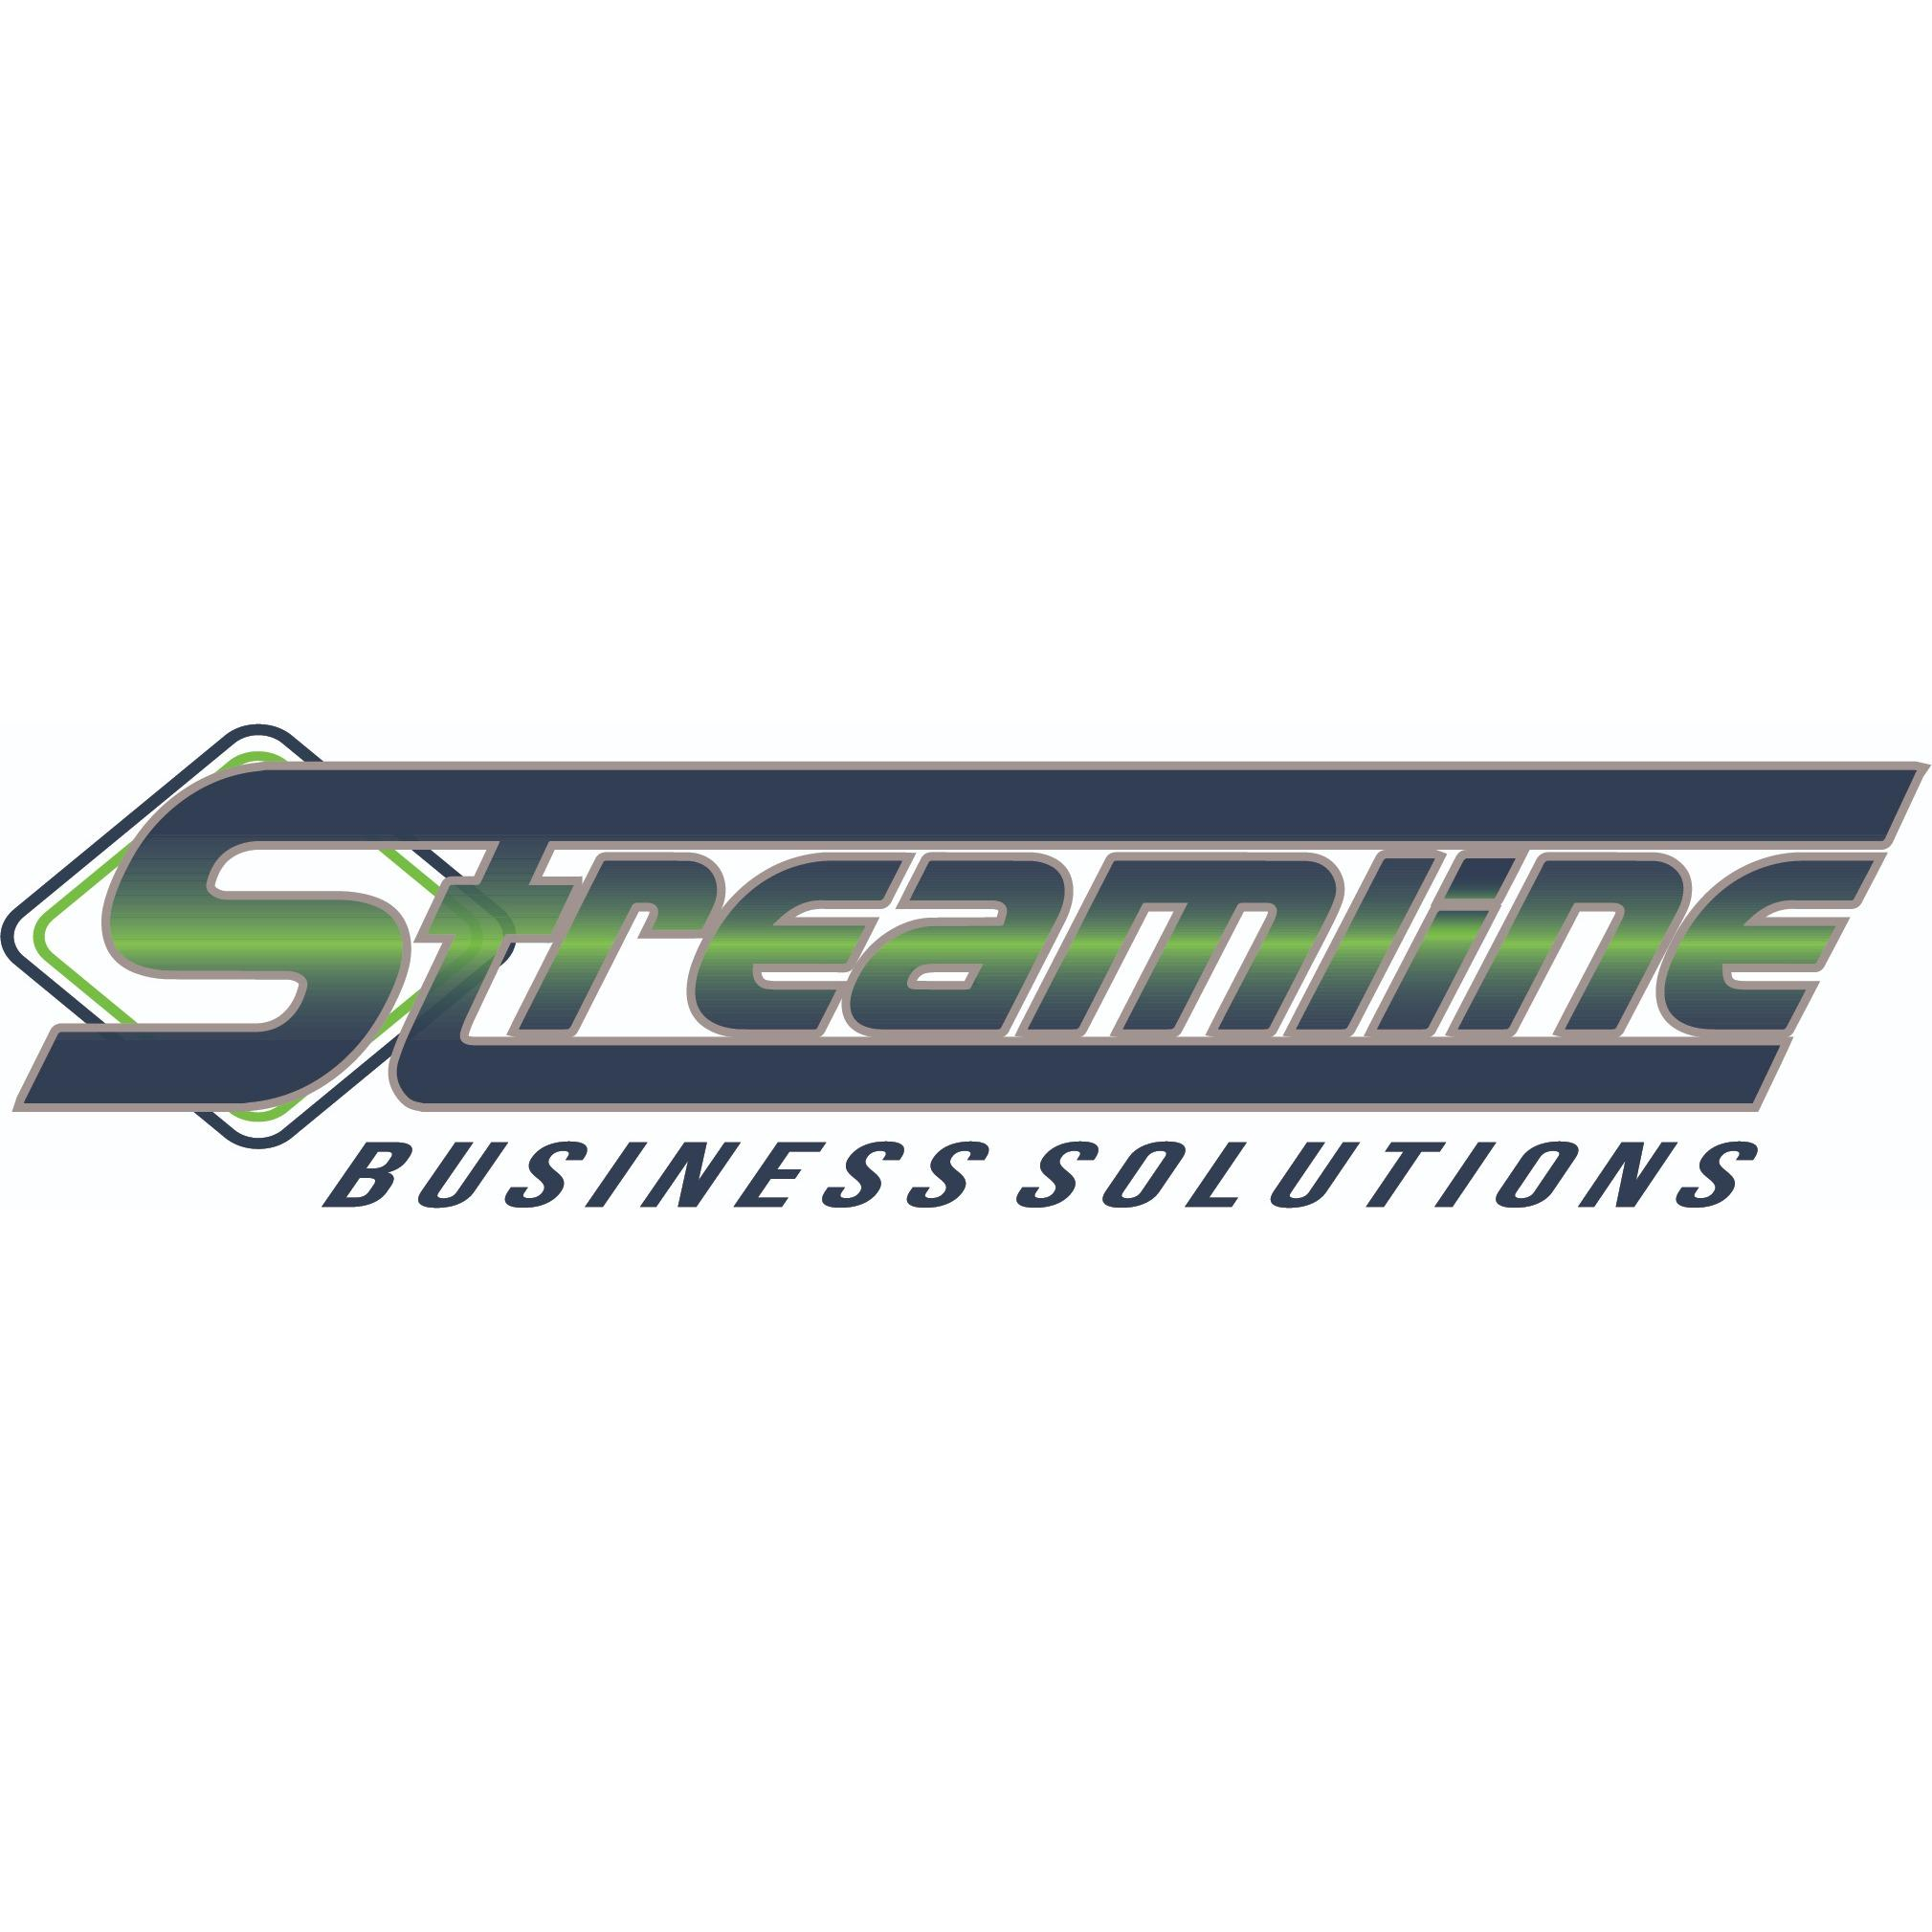 Streamline Business Solutions